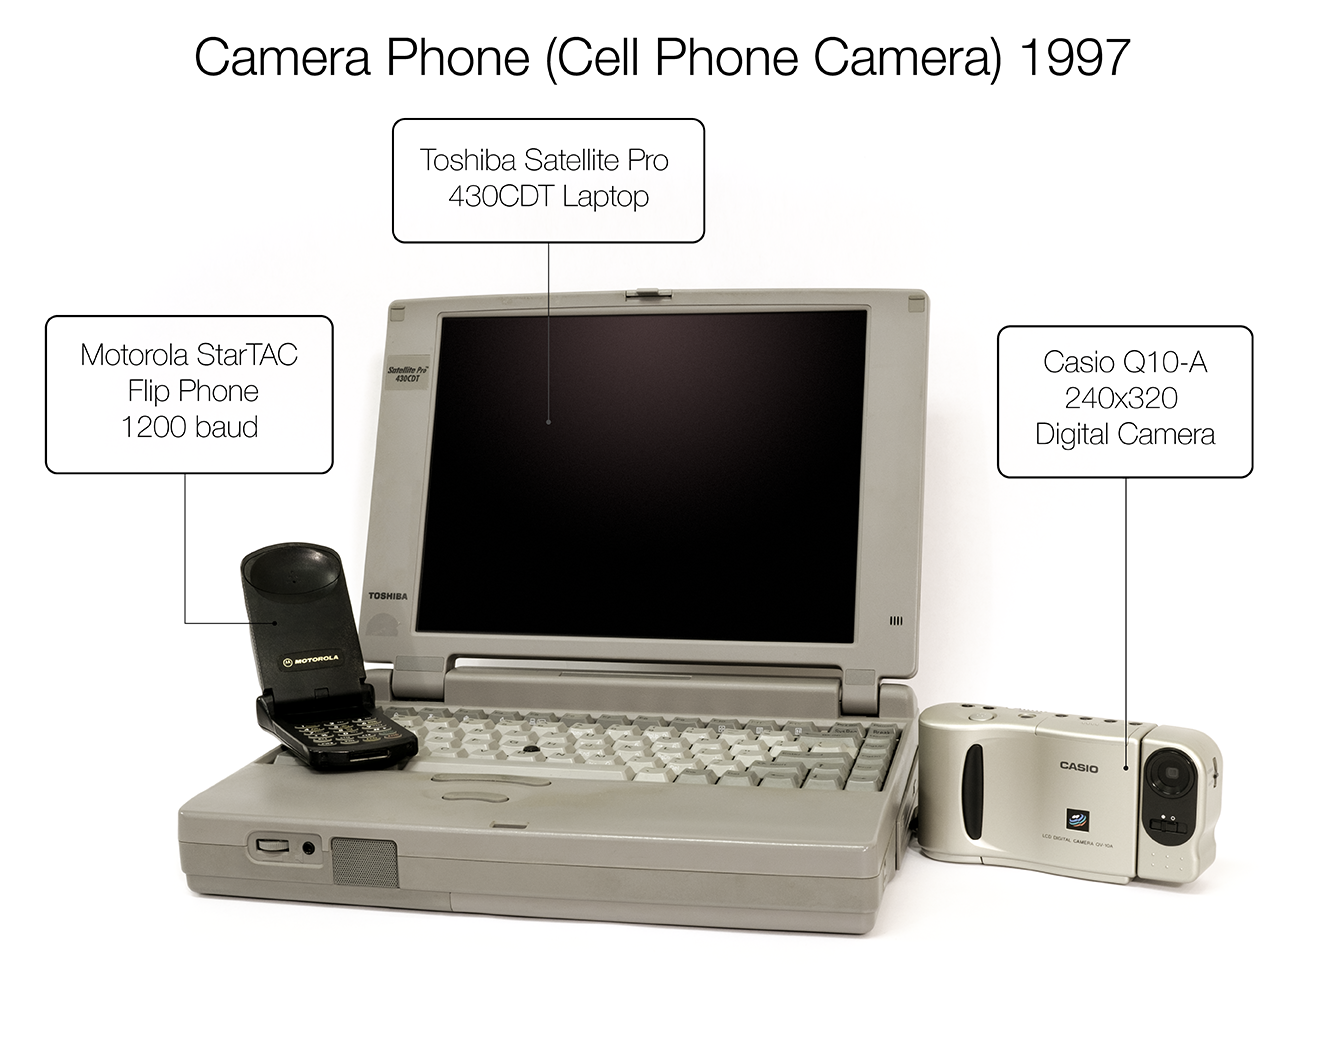 Philippe Kahn\'s 1997 digital camera, cellphone, and  laptop used to transmit the first camera phone image